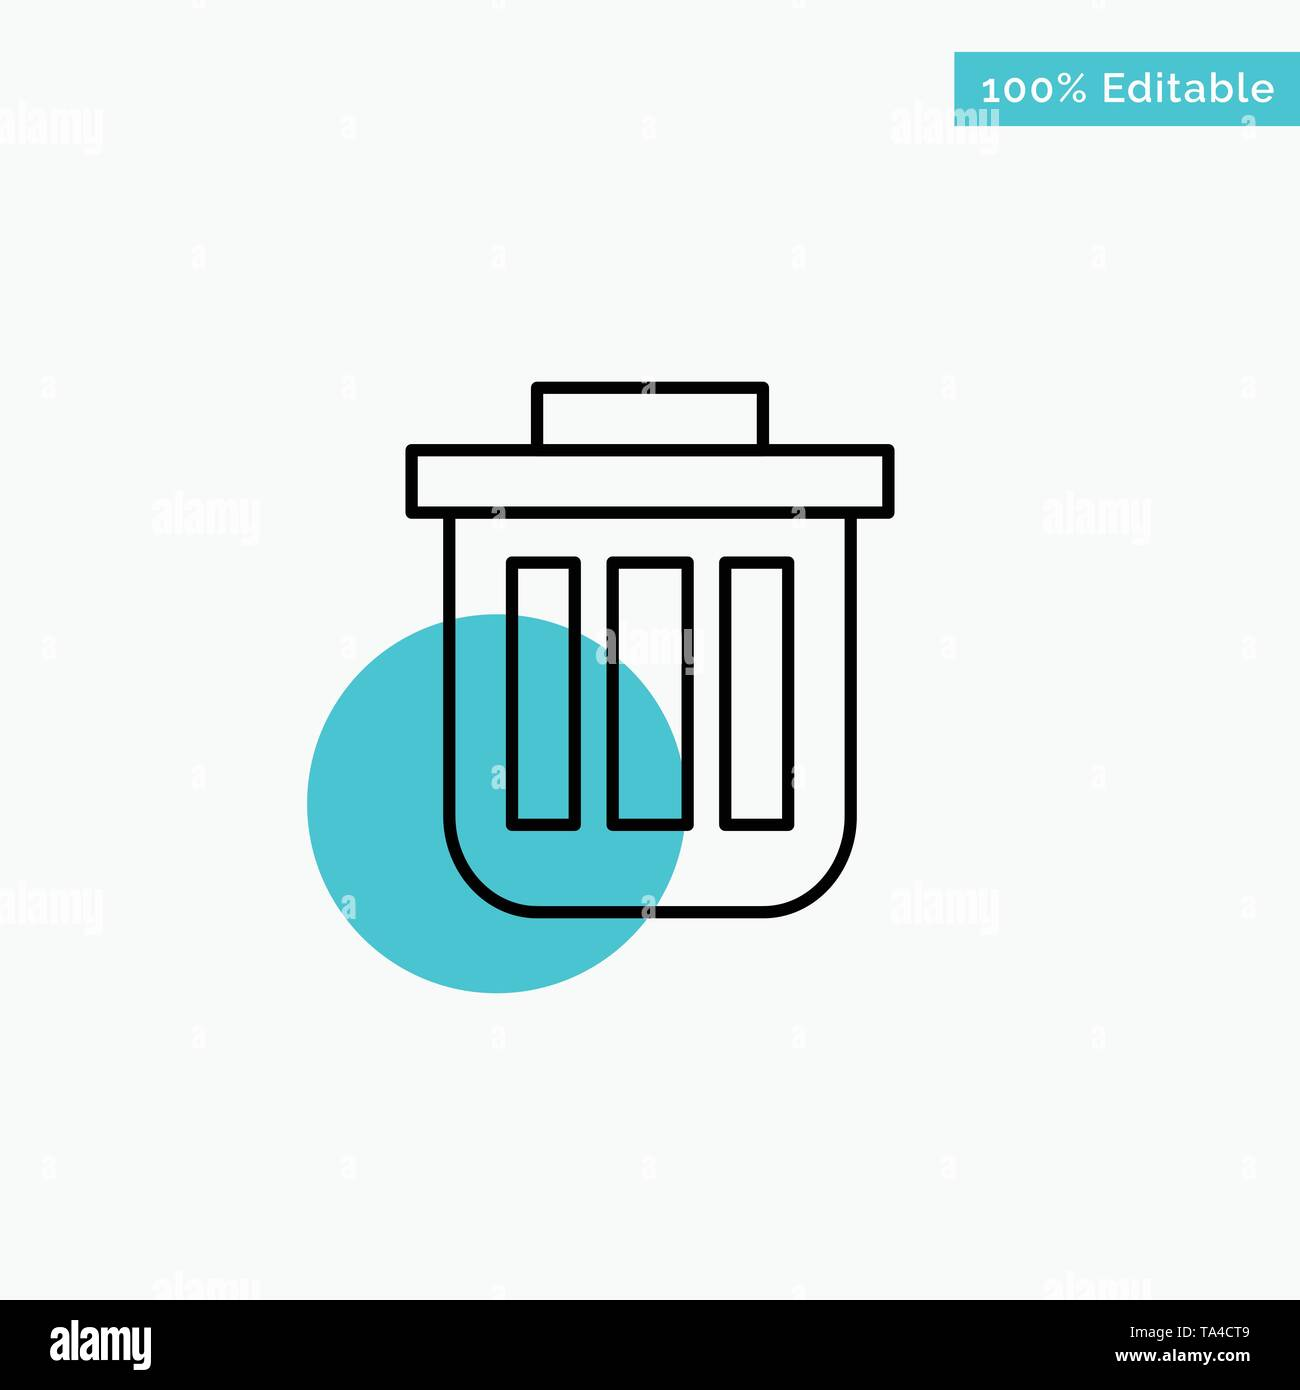 Trash, Basket, Bin, Can, Container, Dustbin, Office turquoise highlight circle point Vector icon - Stock Image